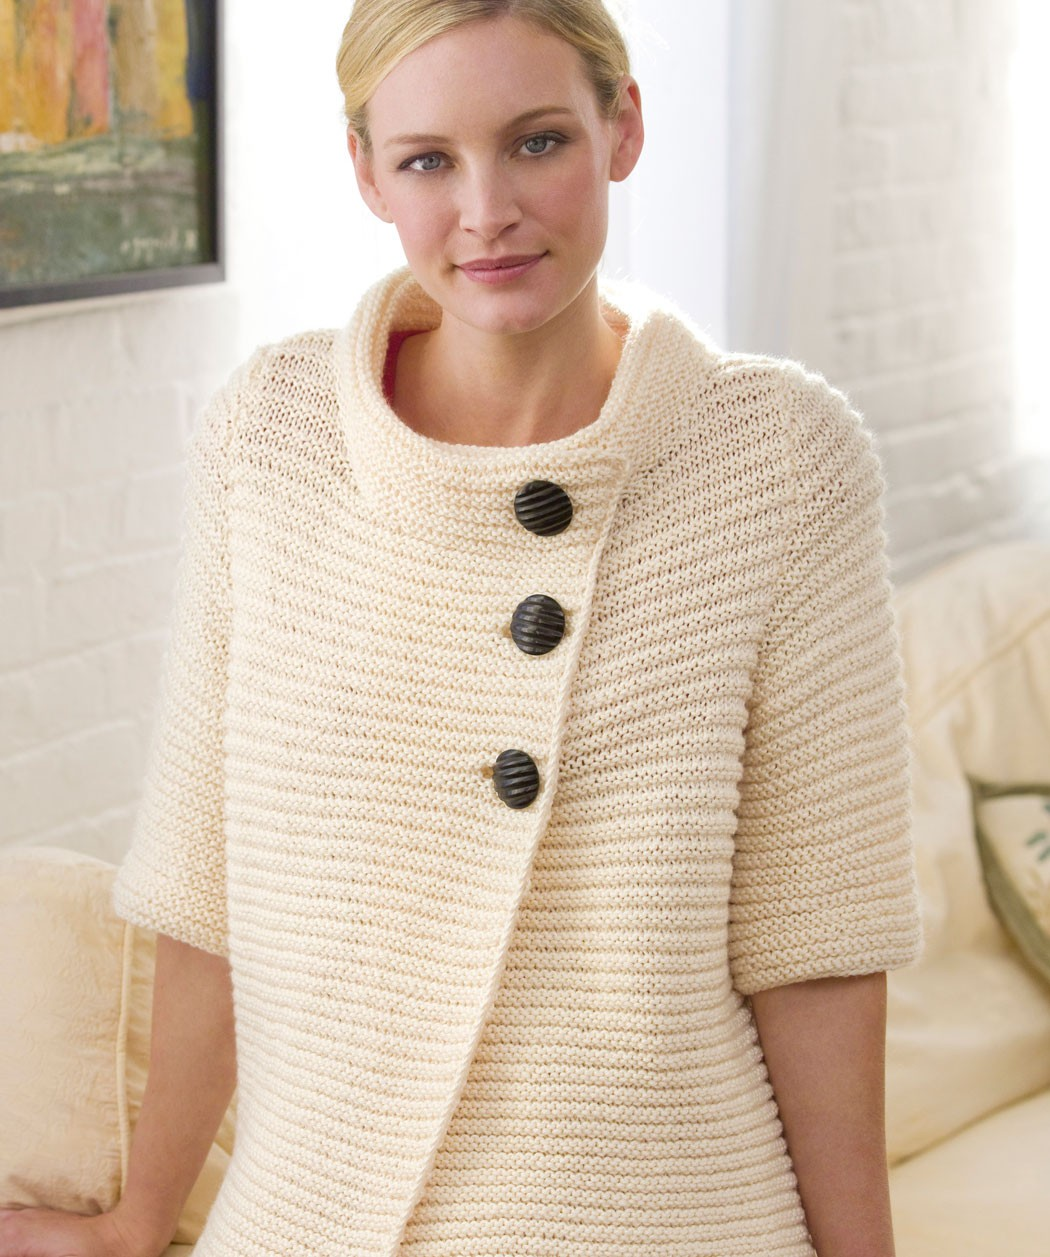 Knitted Sweater Patterns for Women A Knitting Blog